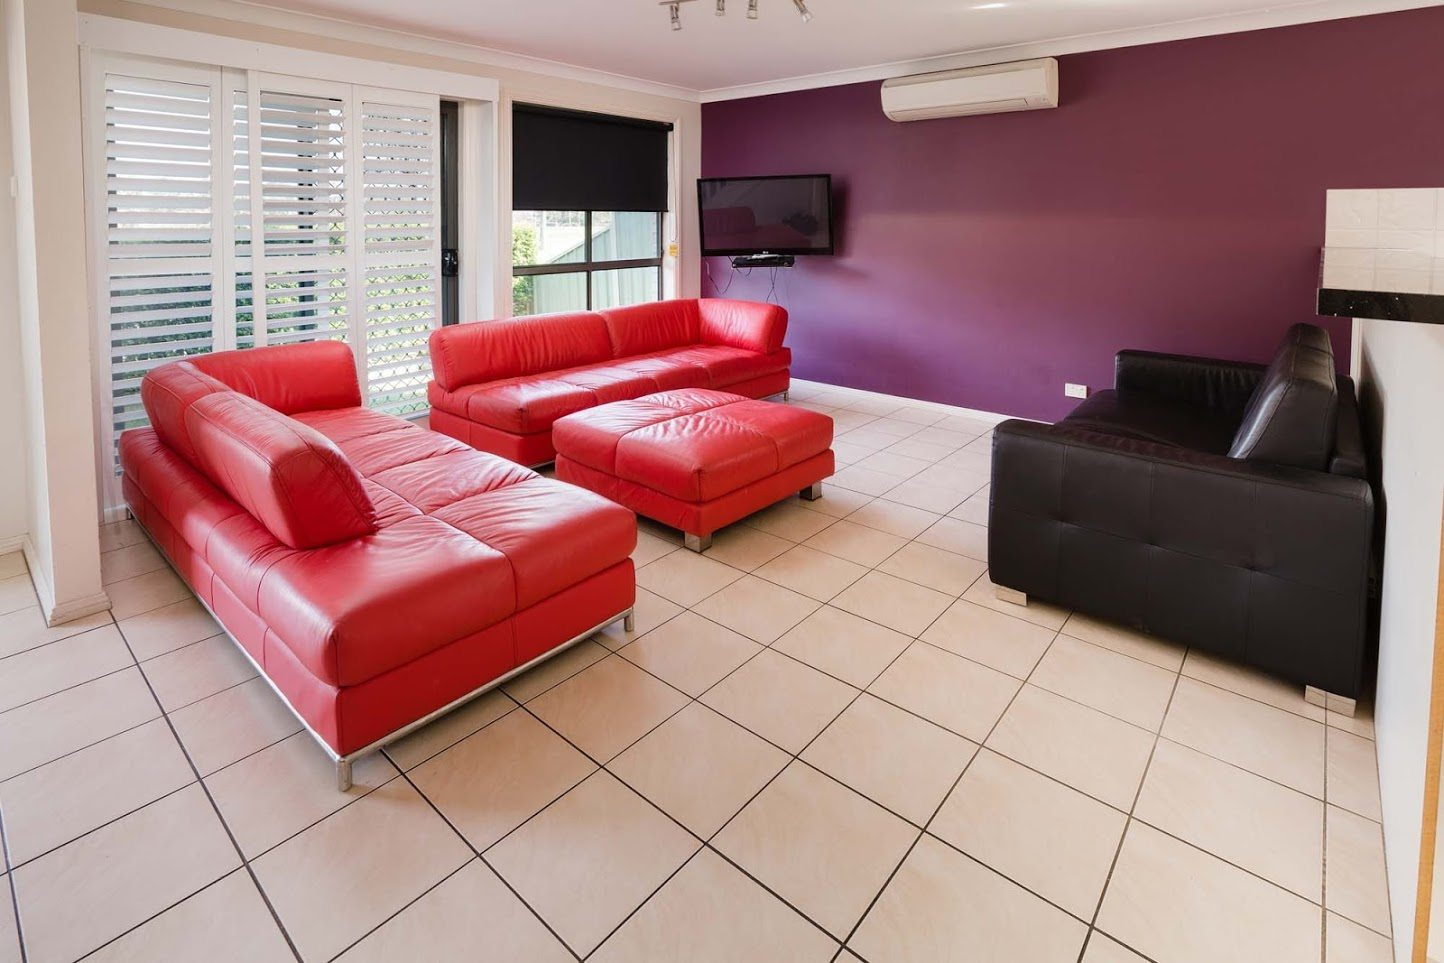 Bluegum Apartments - https://www.newcastleapartments.com.au/wp-content/uploads/2019/01/Room-4303-Loungeroom.jpg